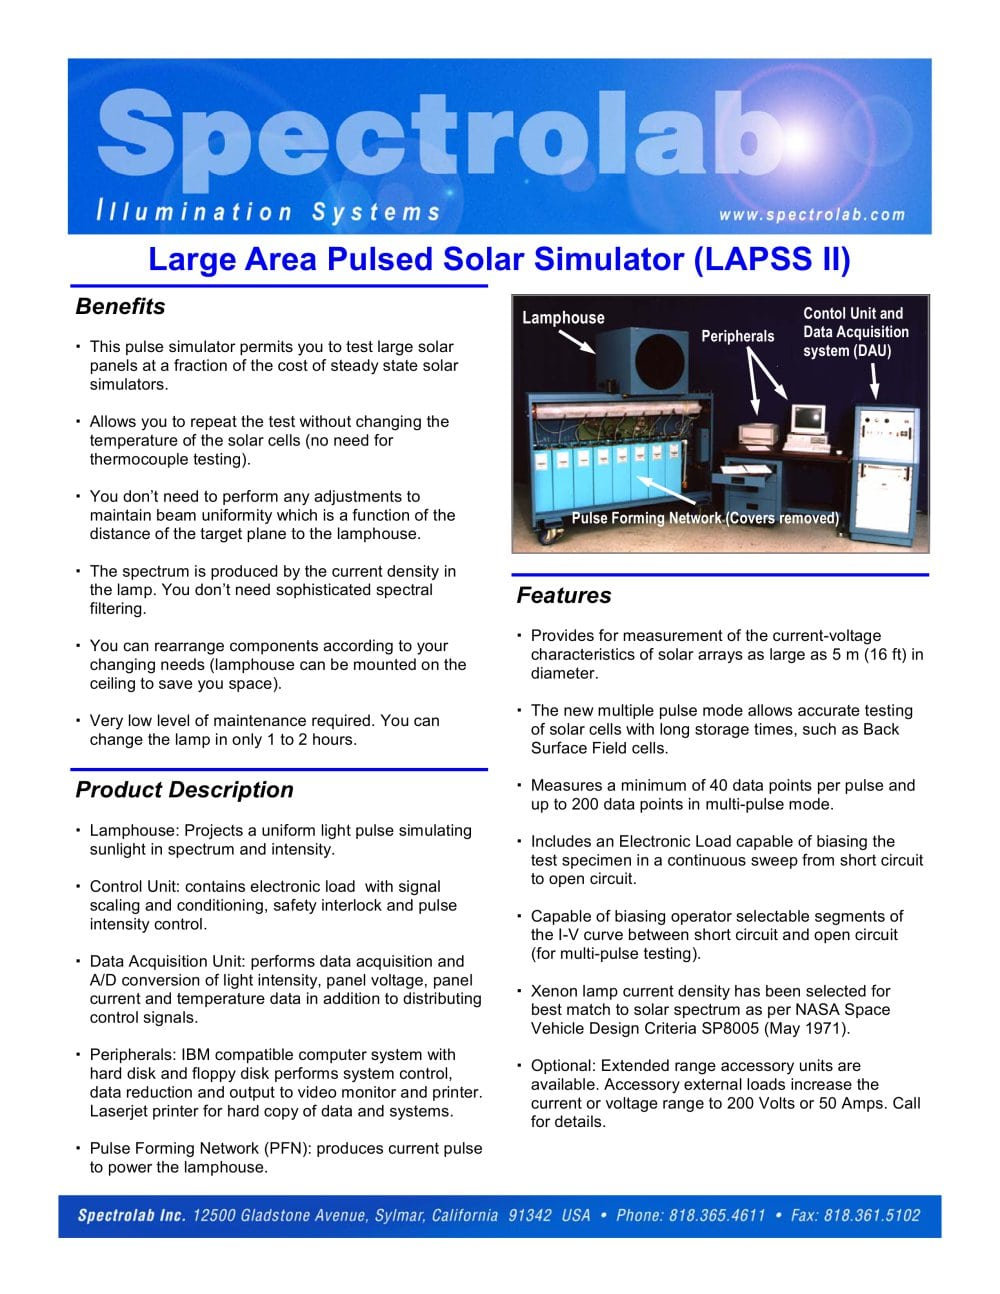 Large Area Pulsed Solar Simulation Spectrolab Inc Pdf Catalogs Short Circuit Test Open And 1 2 Pages